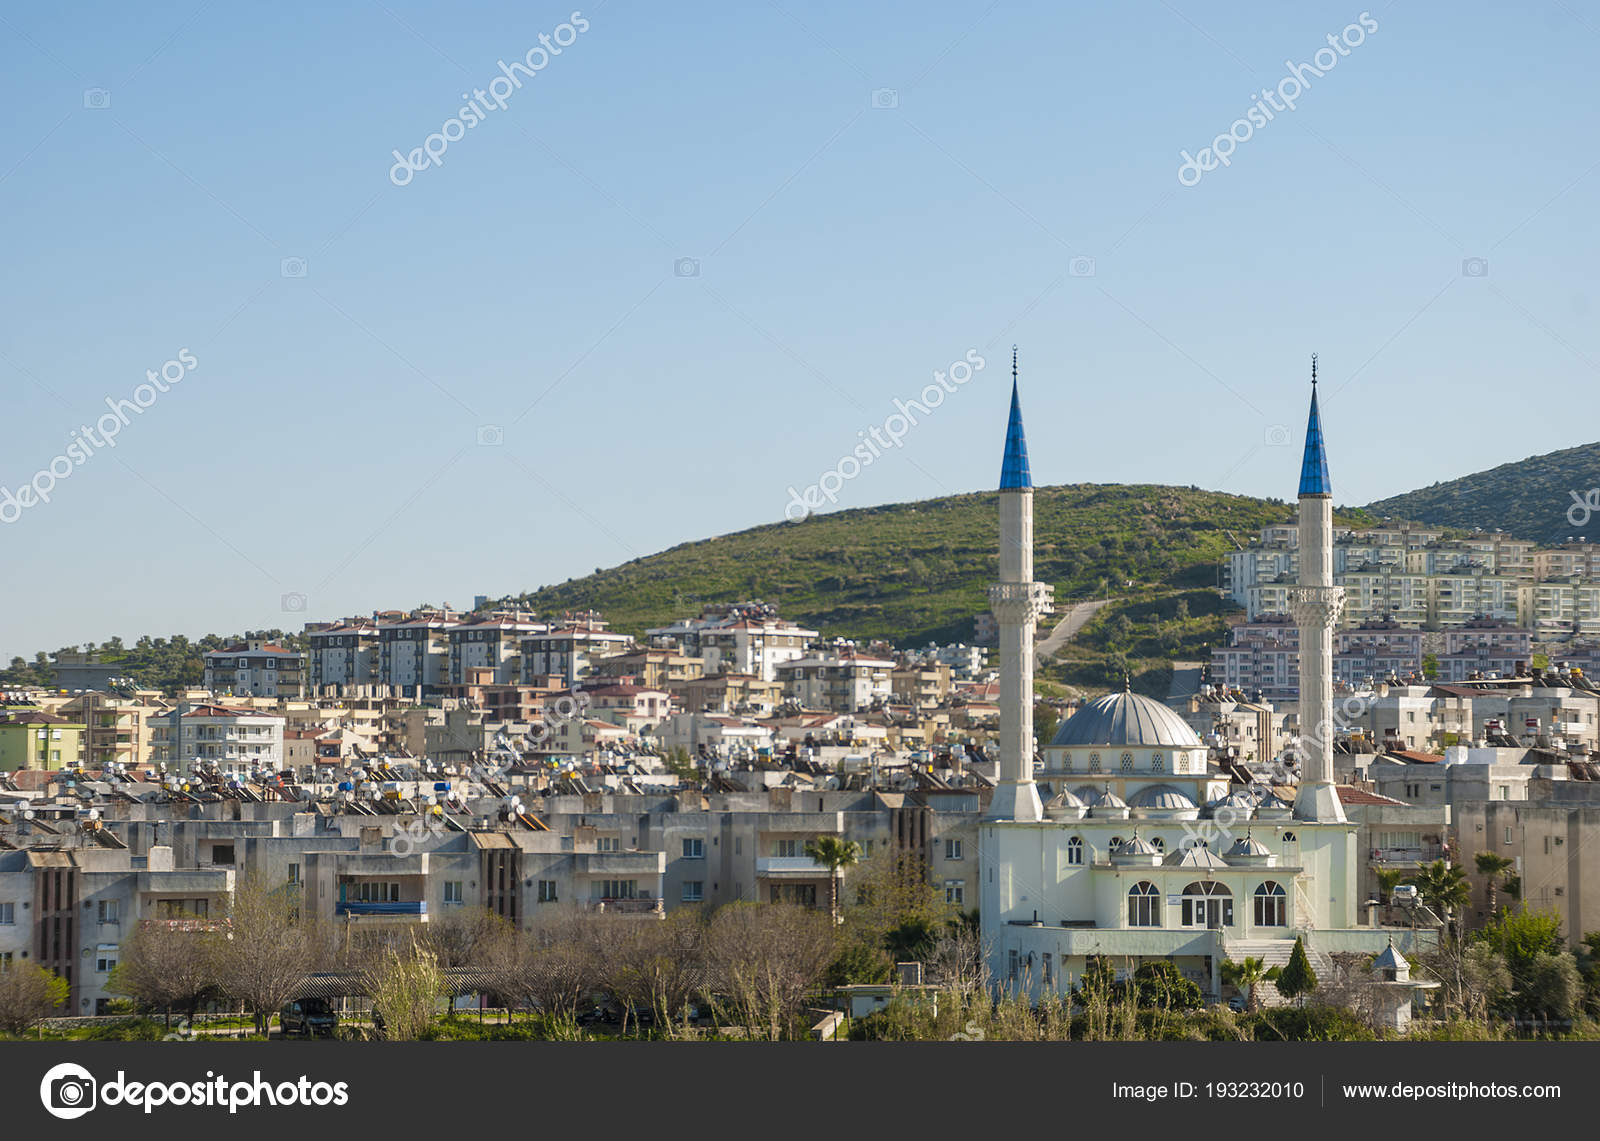 milas, provinces of mugla, turkey -march 18, 2014:view of the mosque